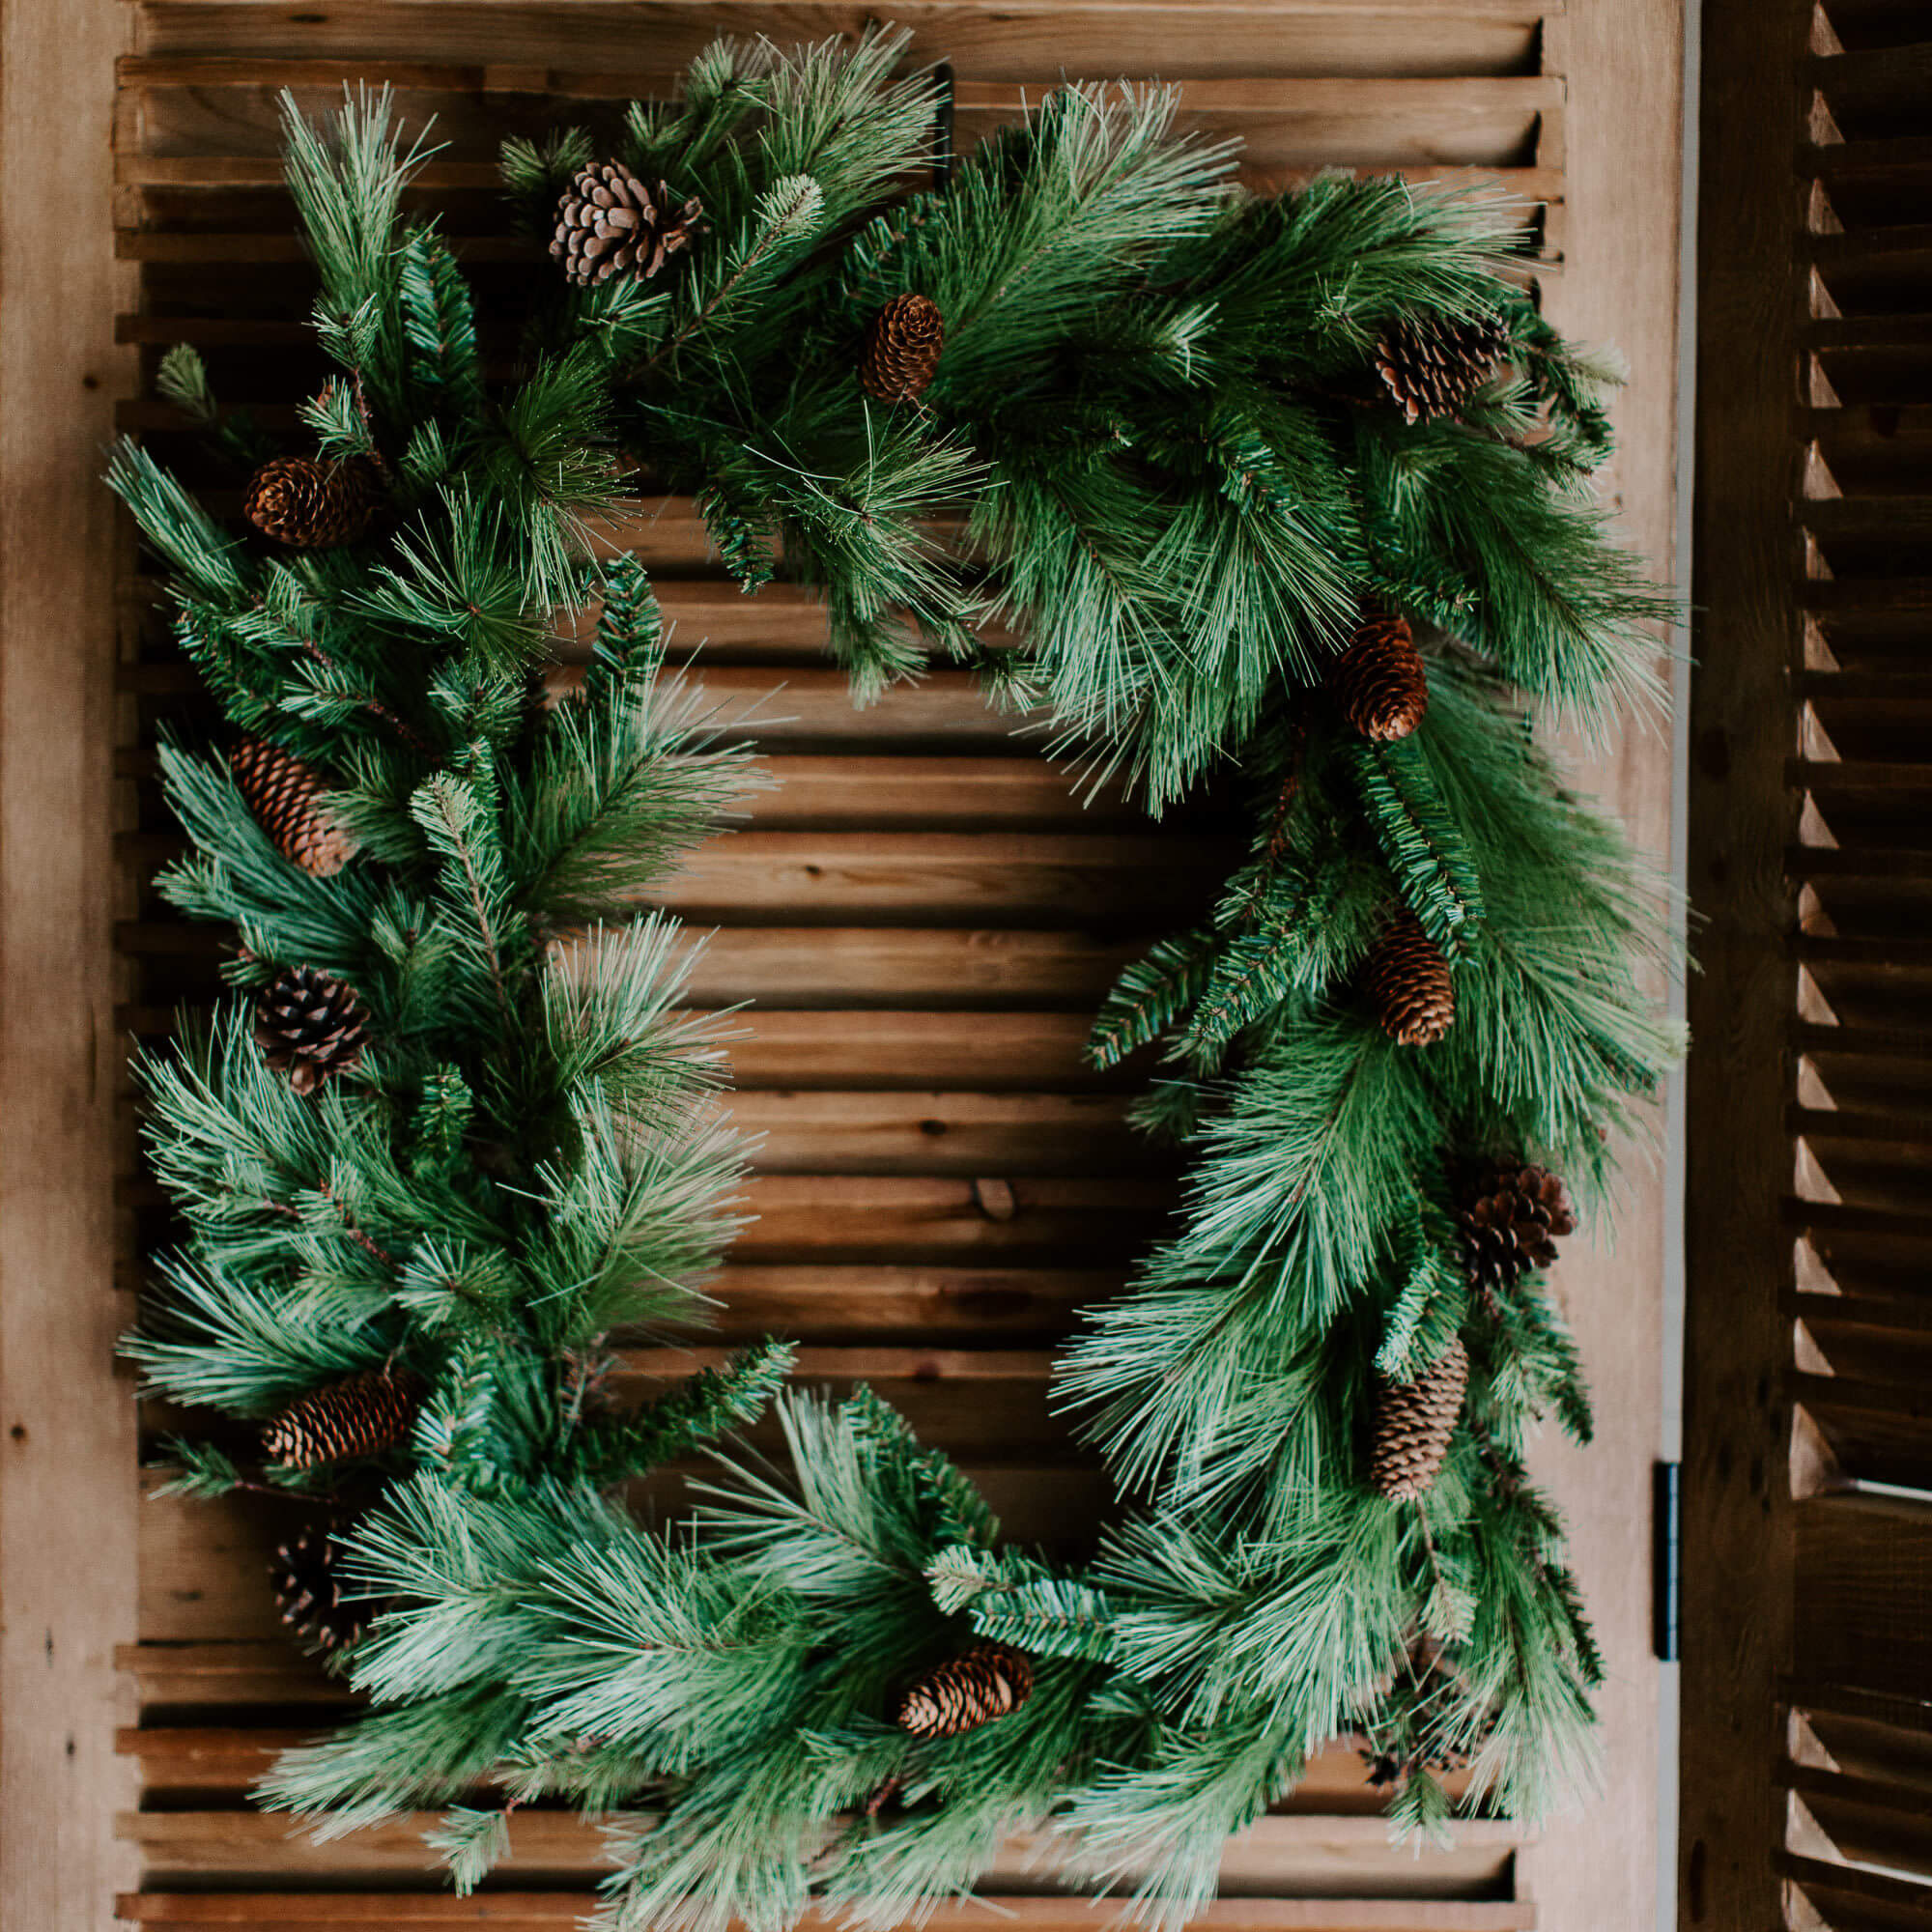 A 22 inch by 30 inch rectangular faux green pine wreath with natural pinecones adorn a front door for winter greetings